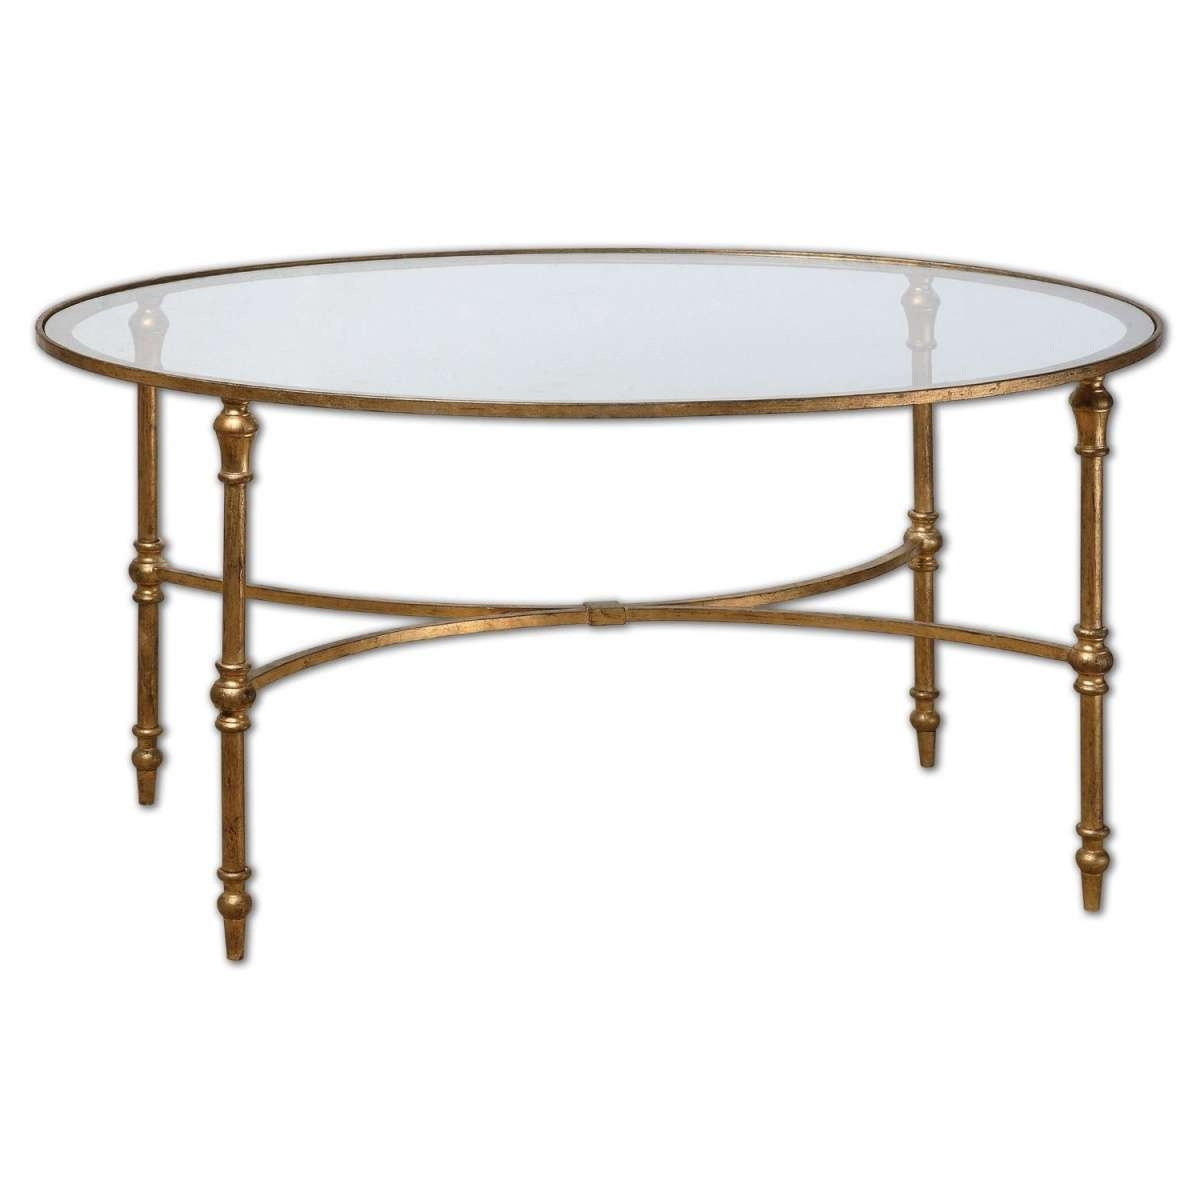 Well Known Round Glass Coffee Tables Inside Coffee Tables : Fashionable Inspiration All Glass Coffee Table (View 20 of 20)